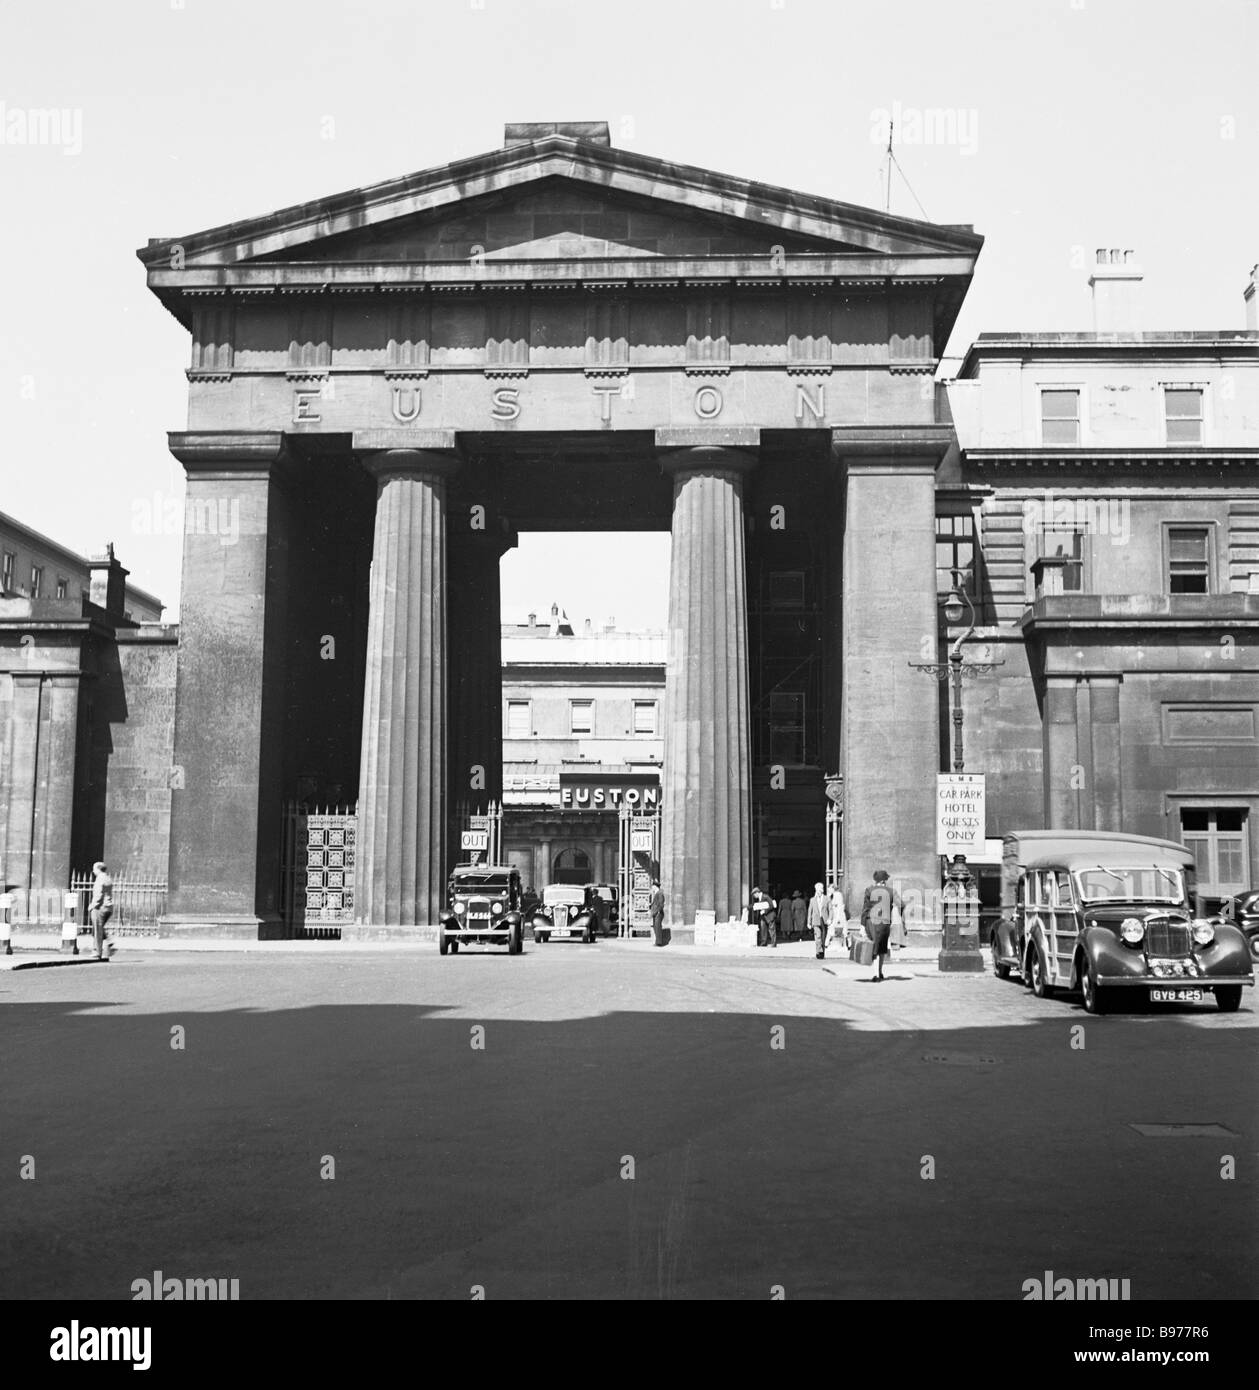 The grand Euston Railway Station Arch, London,1950s. This famous four columned archway, built in 1837, was the original - Stock Image